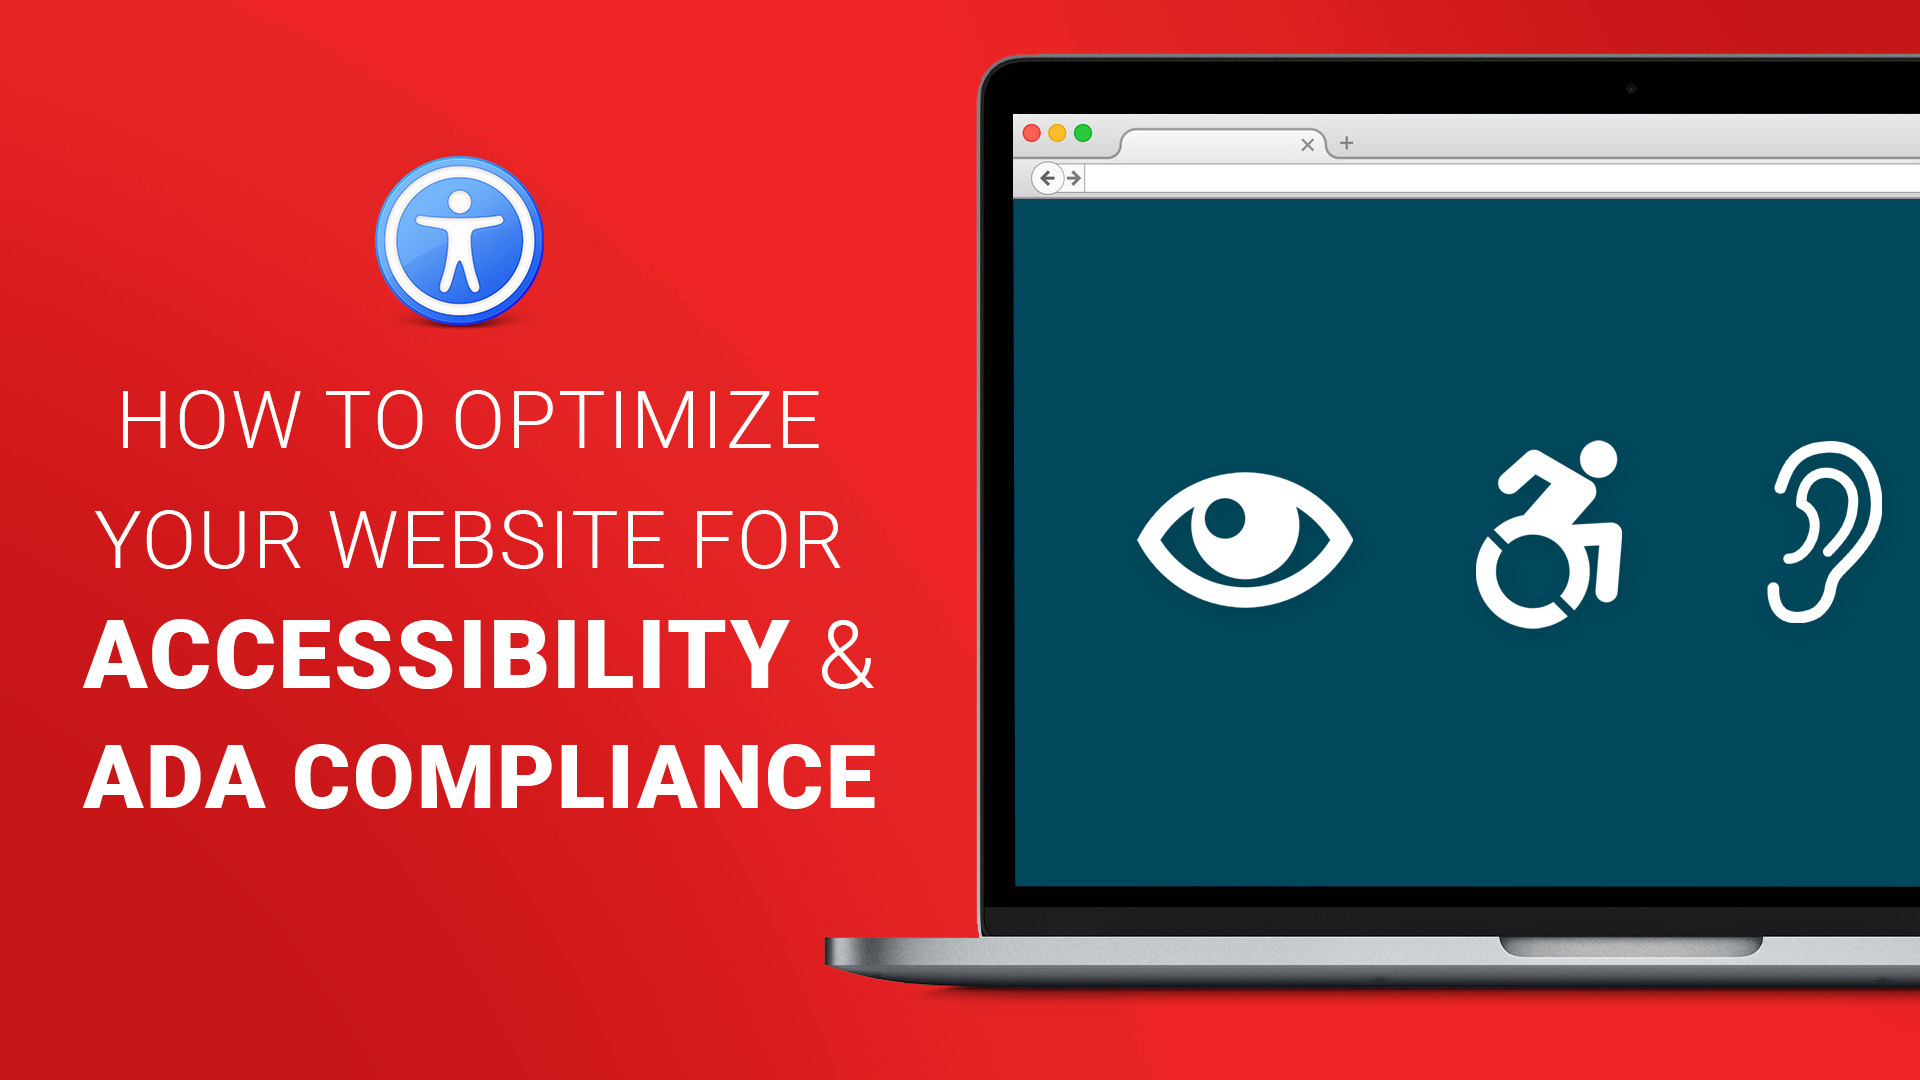 How to Optimize Your Website For Accessibility and ADA Compliance